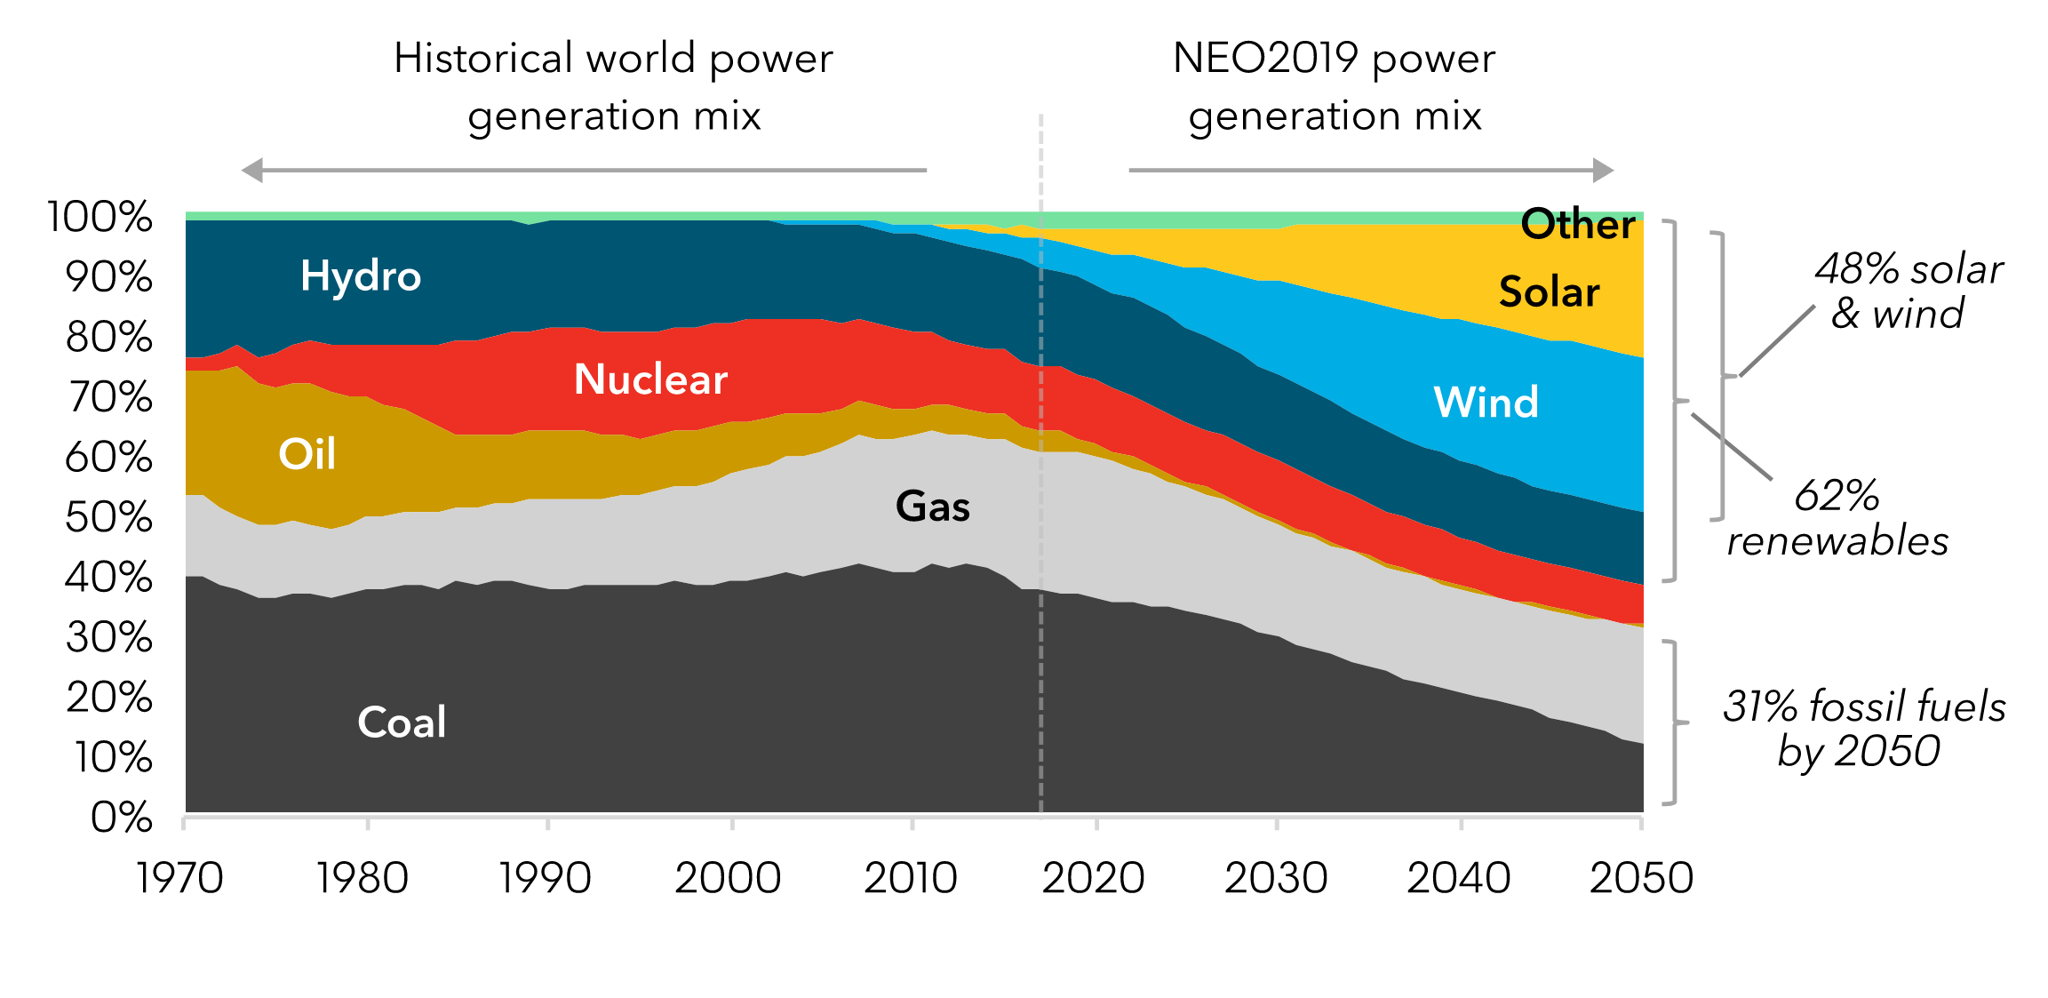 Projected power generation mix by source, 2050, BNEF